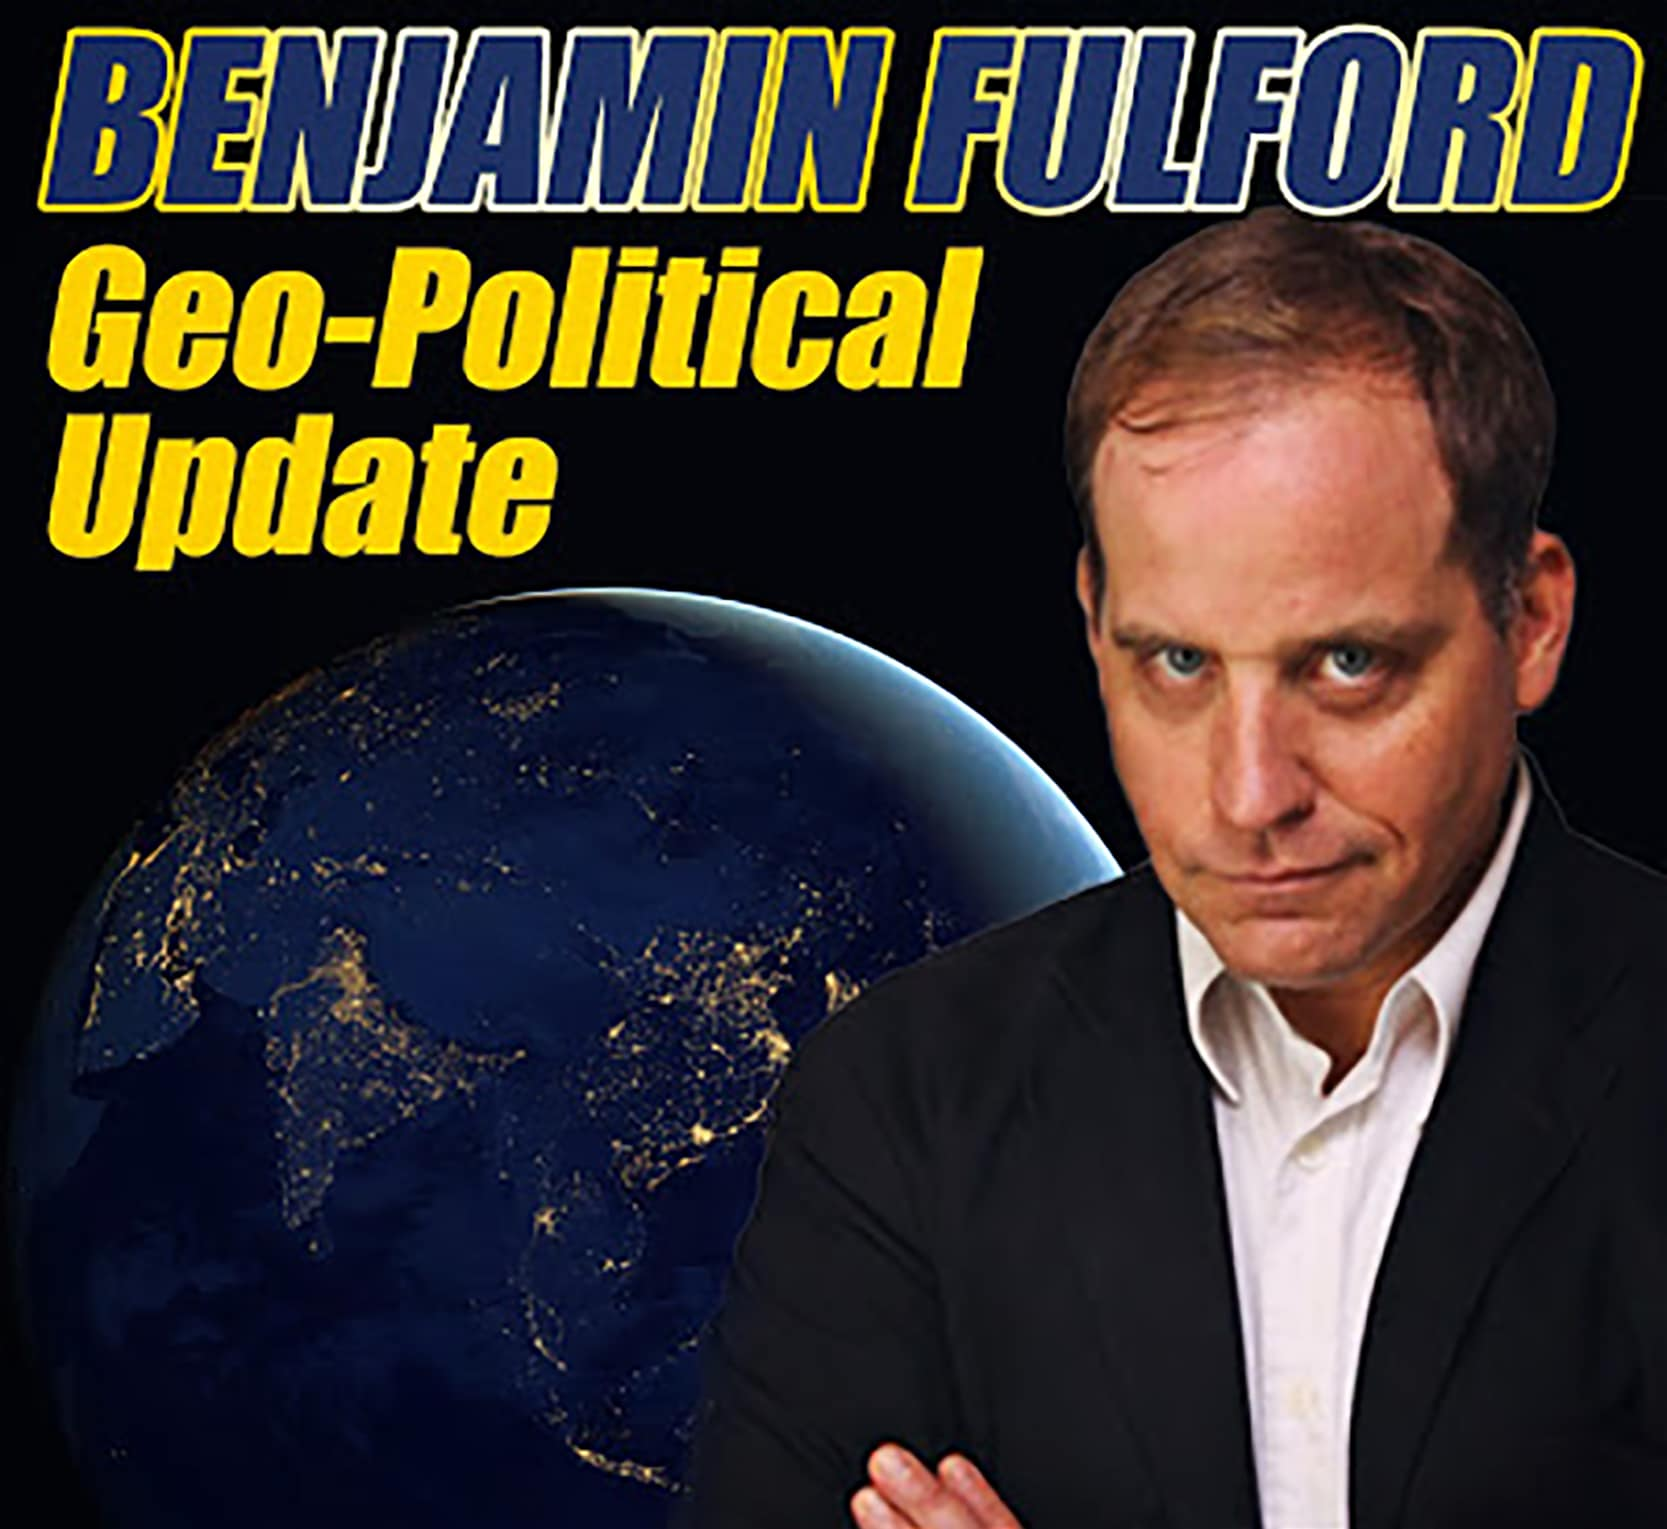 Benjamin Fulford — April 5th 2021: Khazarian Mafia Running Biden Psy-ops Out of Switzerland